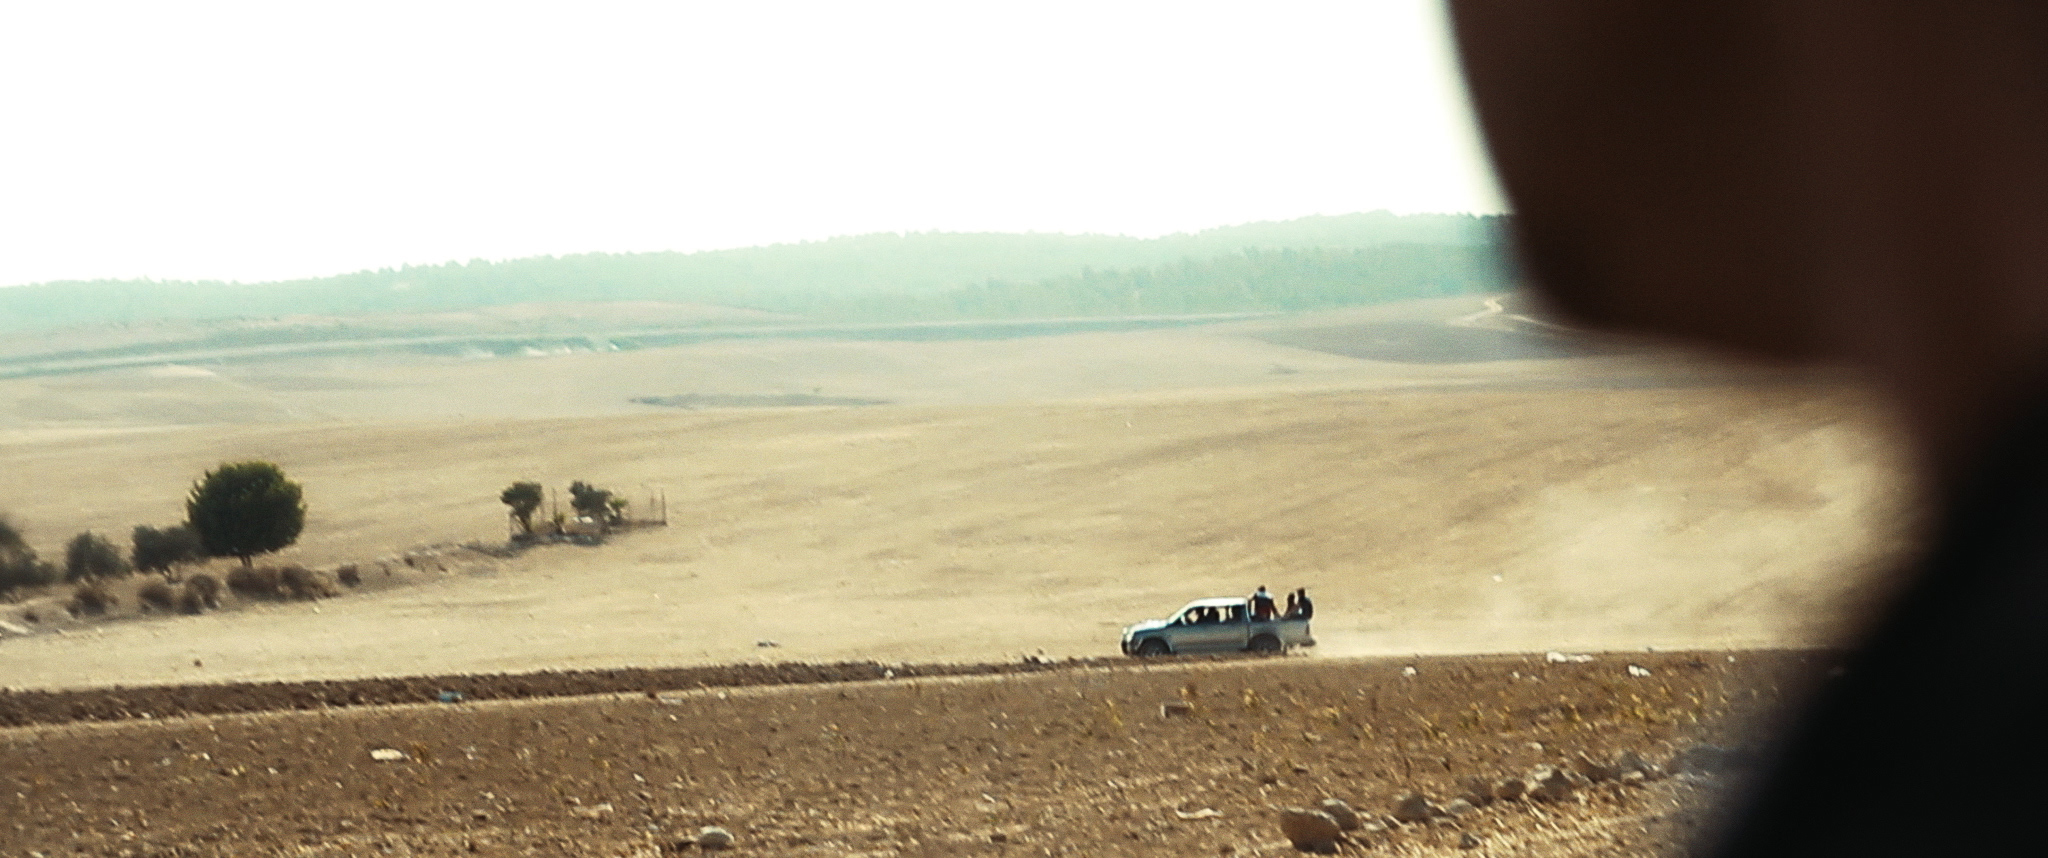 From the POV of a blurred figure in the foreground, a blue truck carrying five men drives along a dusty Palestinian road.